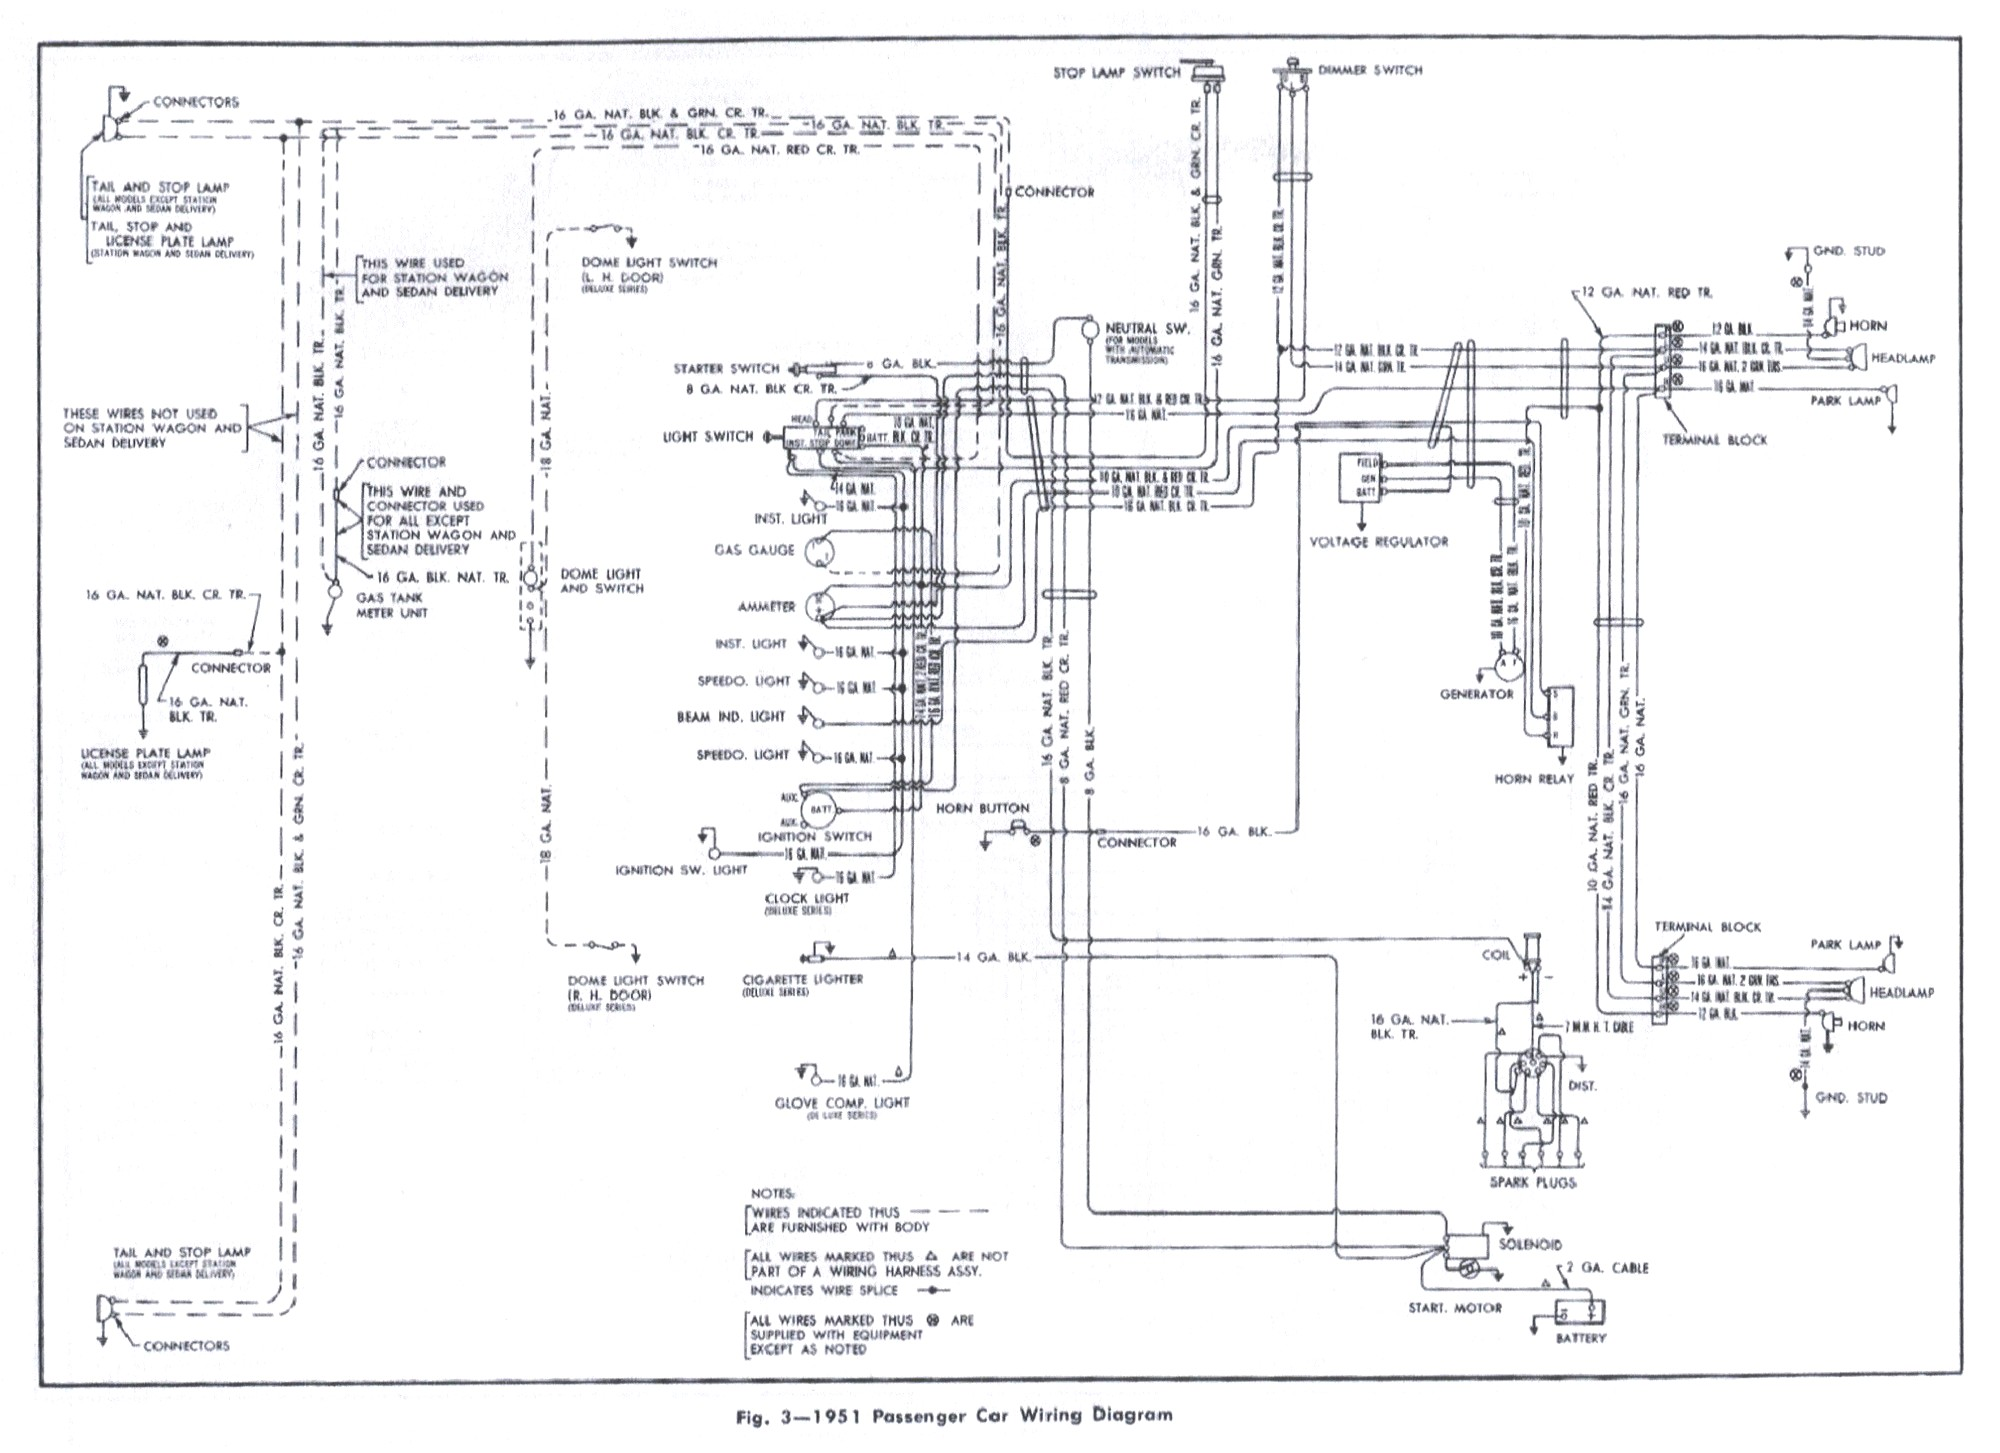 97 s10 wiring diagram 2000 s10 wiring diagram wiring diagram and schematic design anyone have a tail light wiring diagram